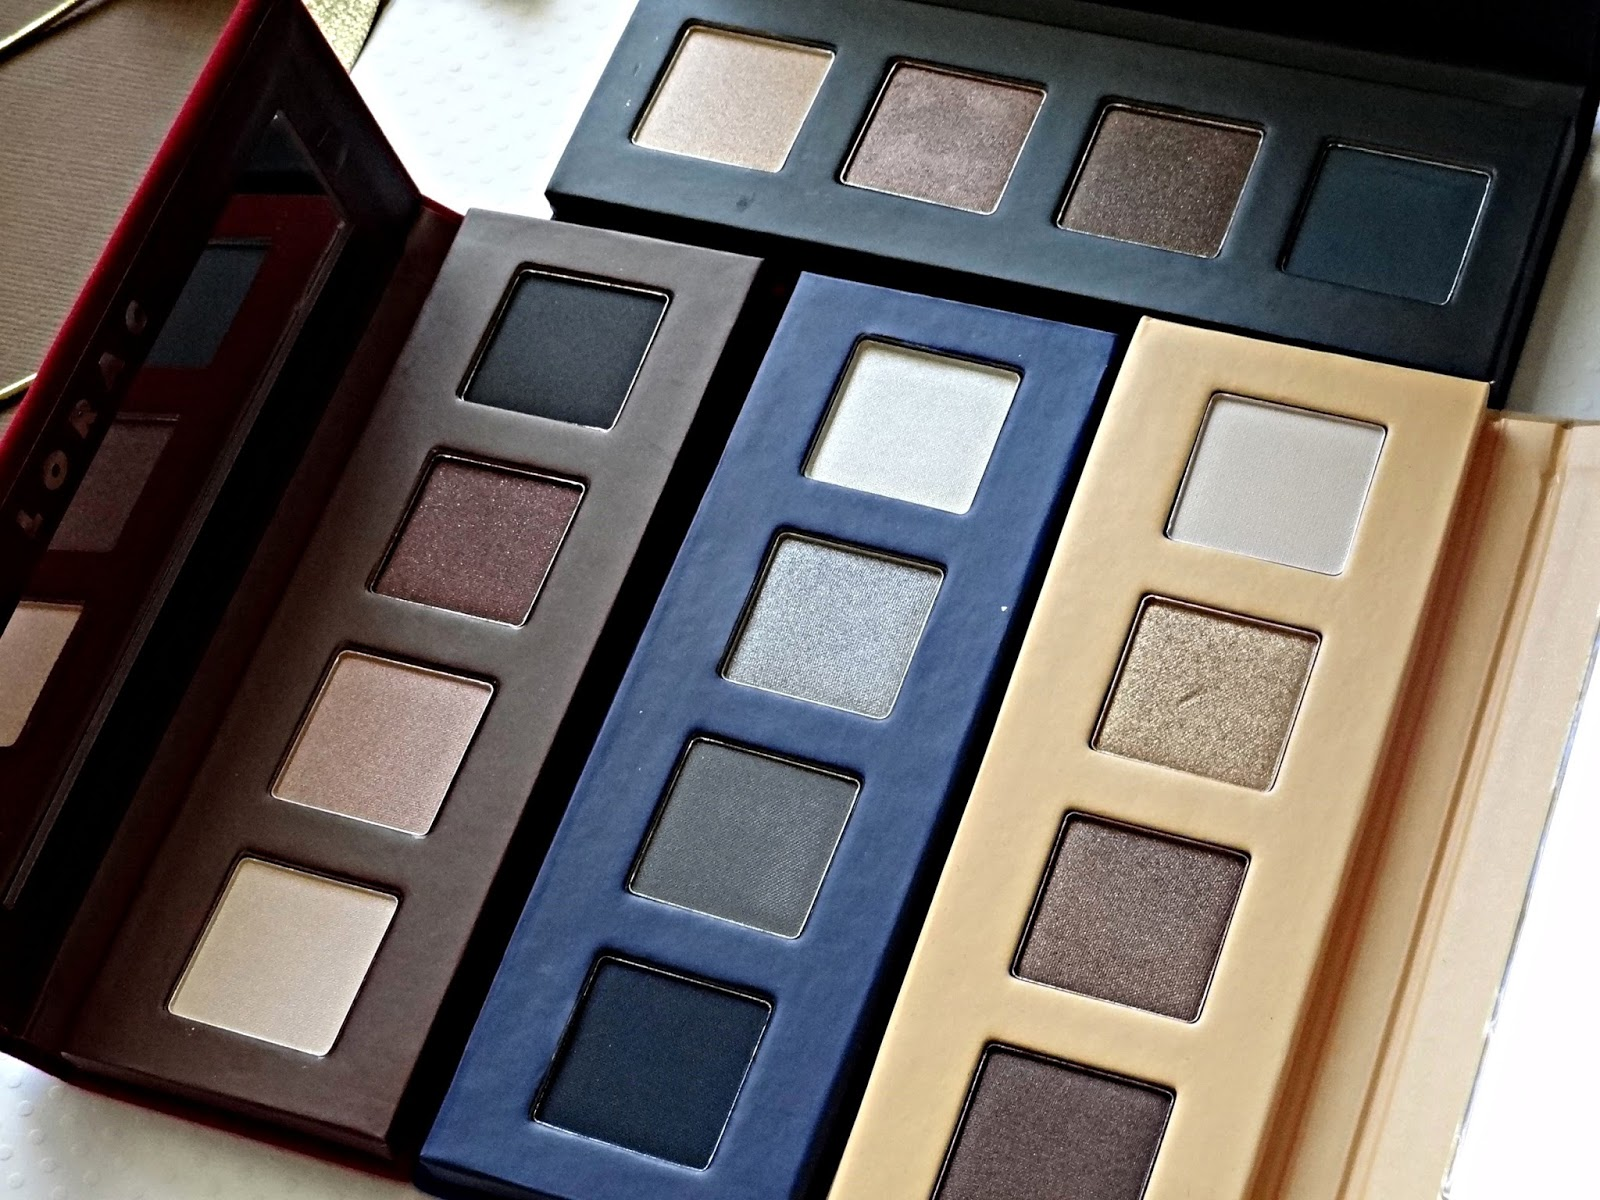 LORAC The Royal Eyeshadow Collection Holiday 2014 Review, Photos & Swatches